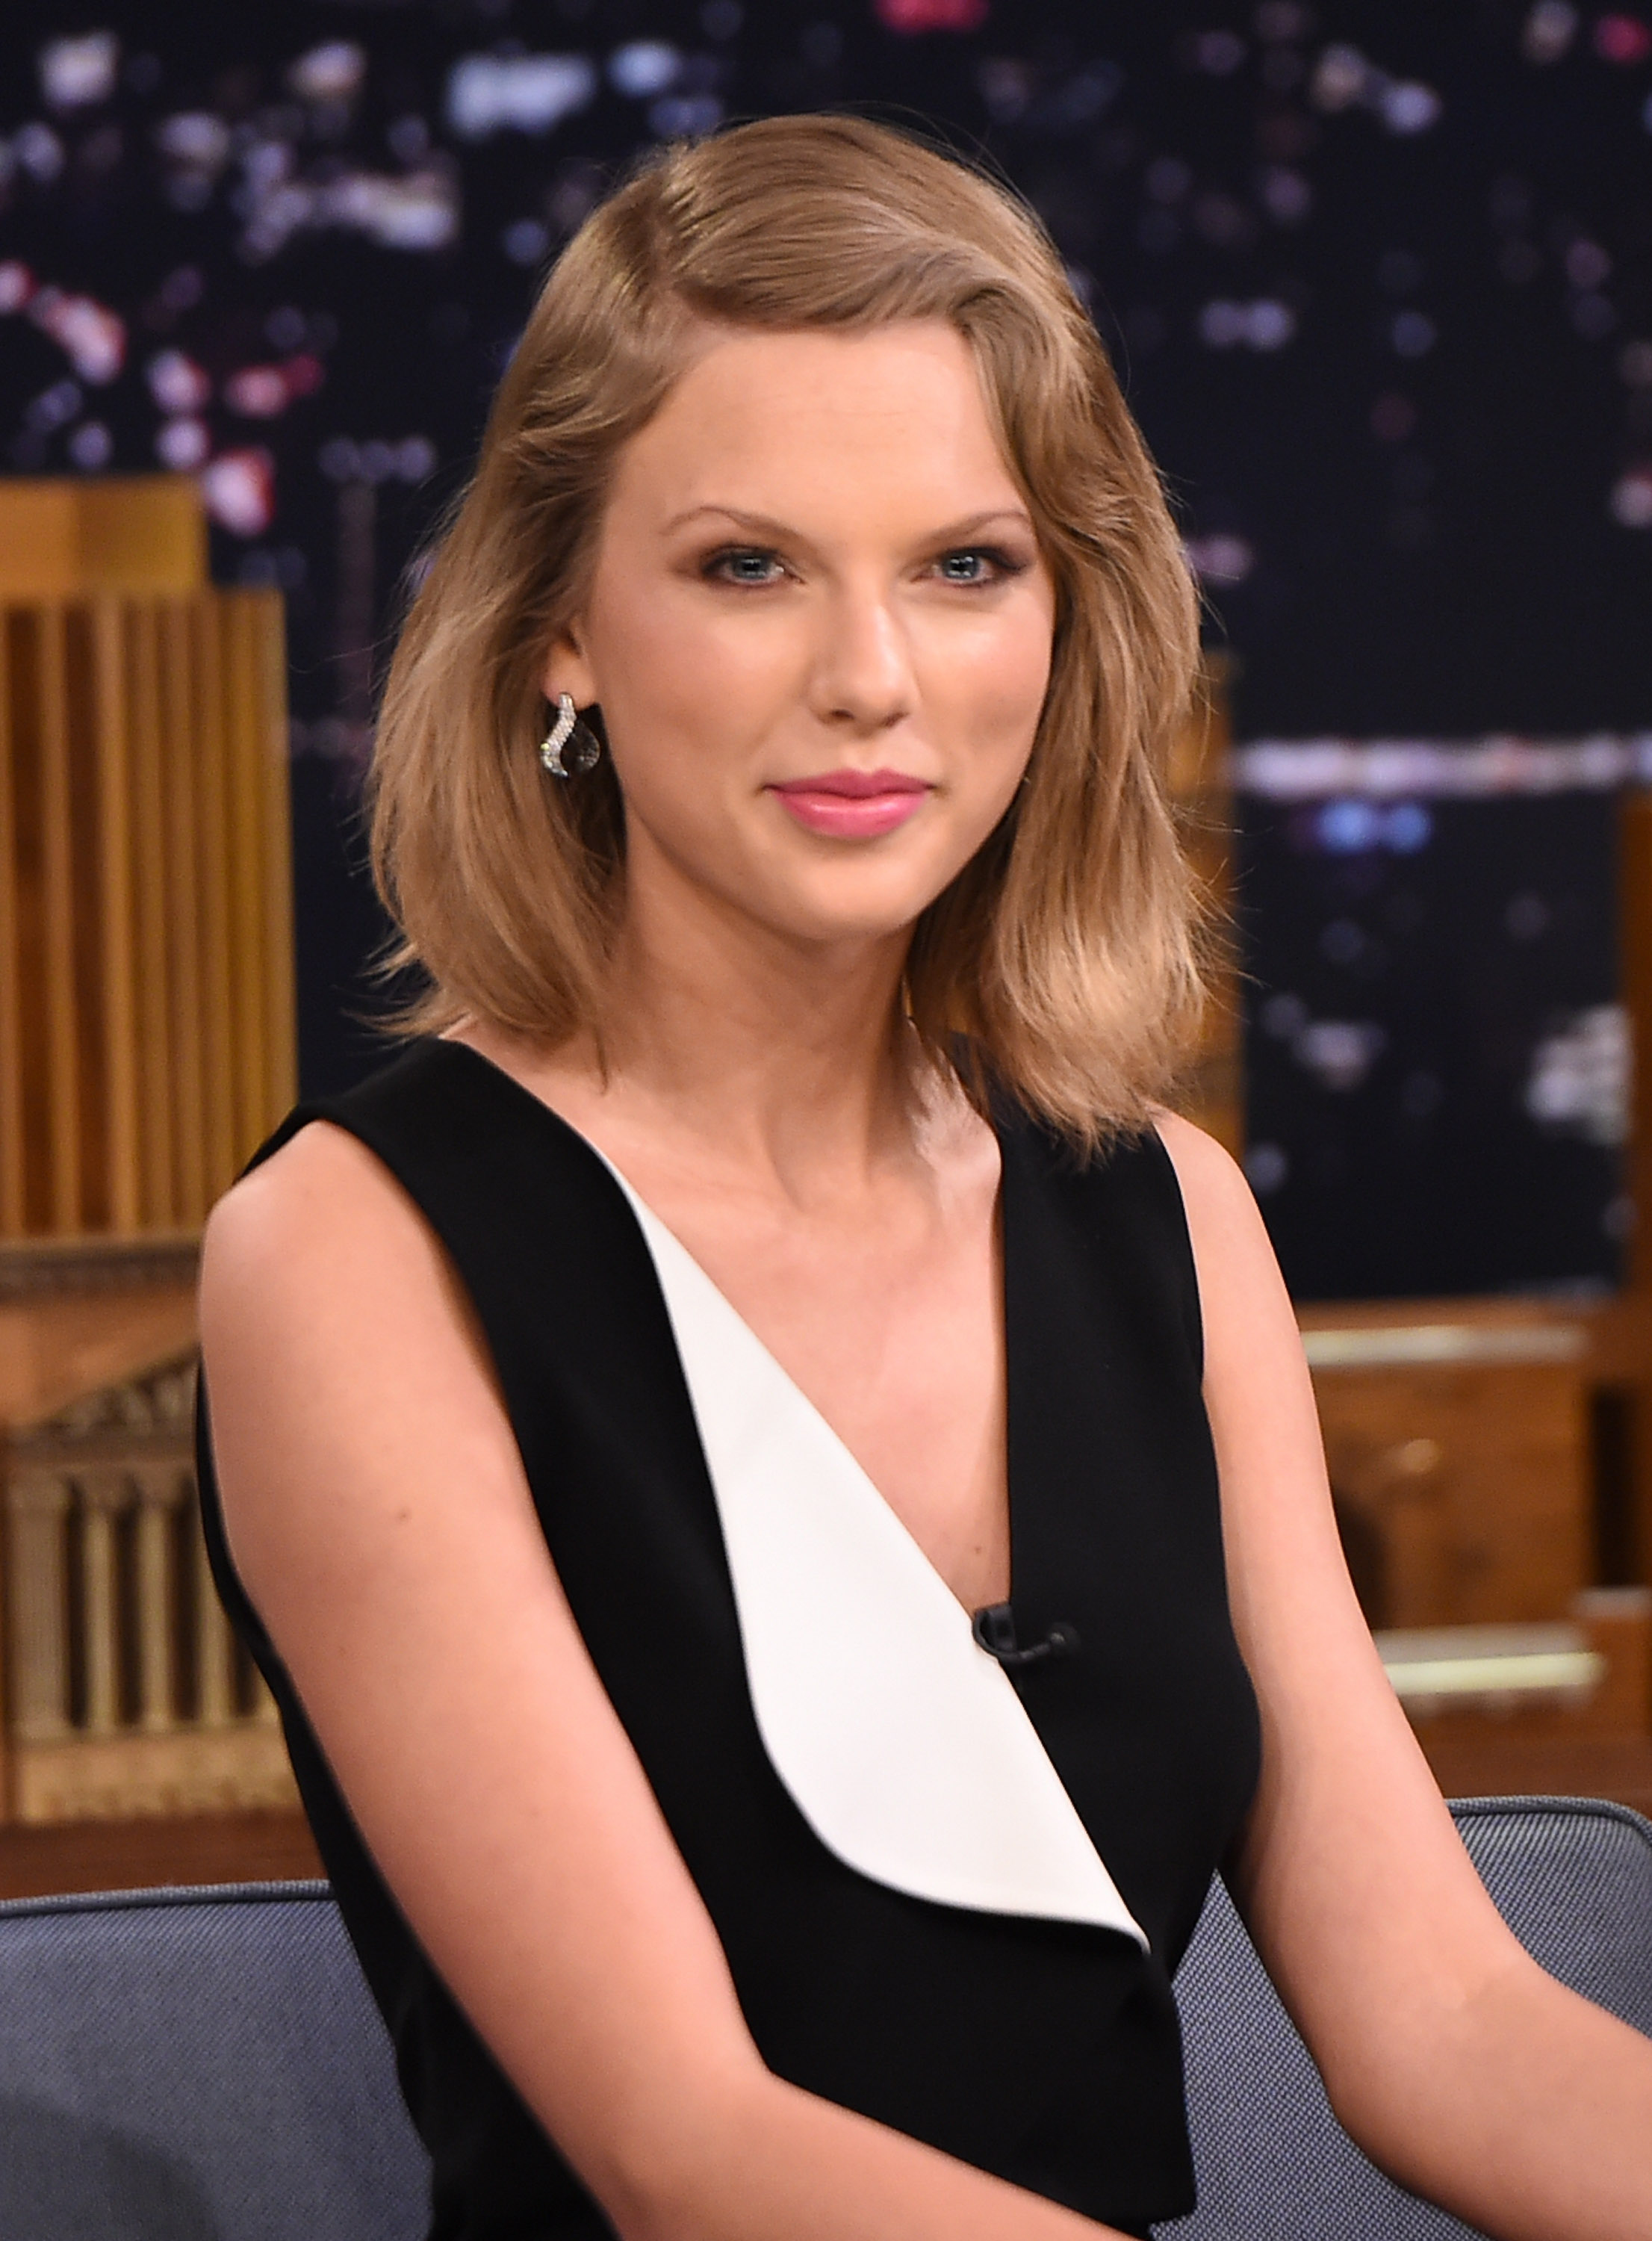 Taylor Swift visits  The Tonight Show Starring Jimmy Fallon  in New York City on Feb. 17, 2015.